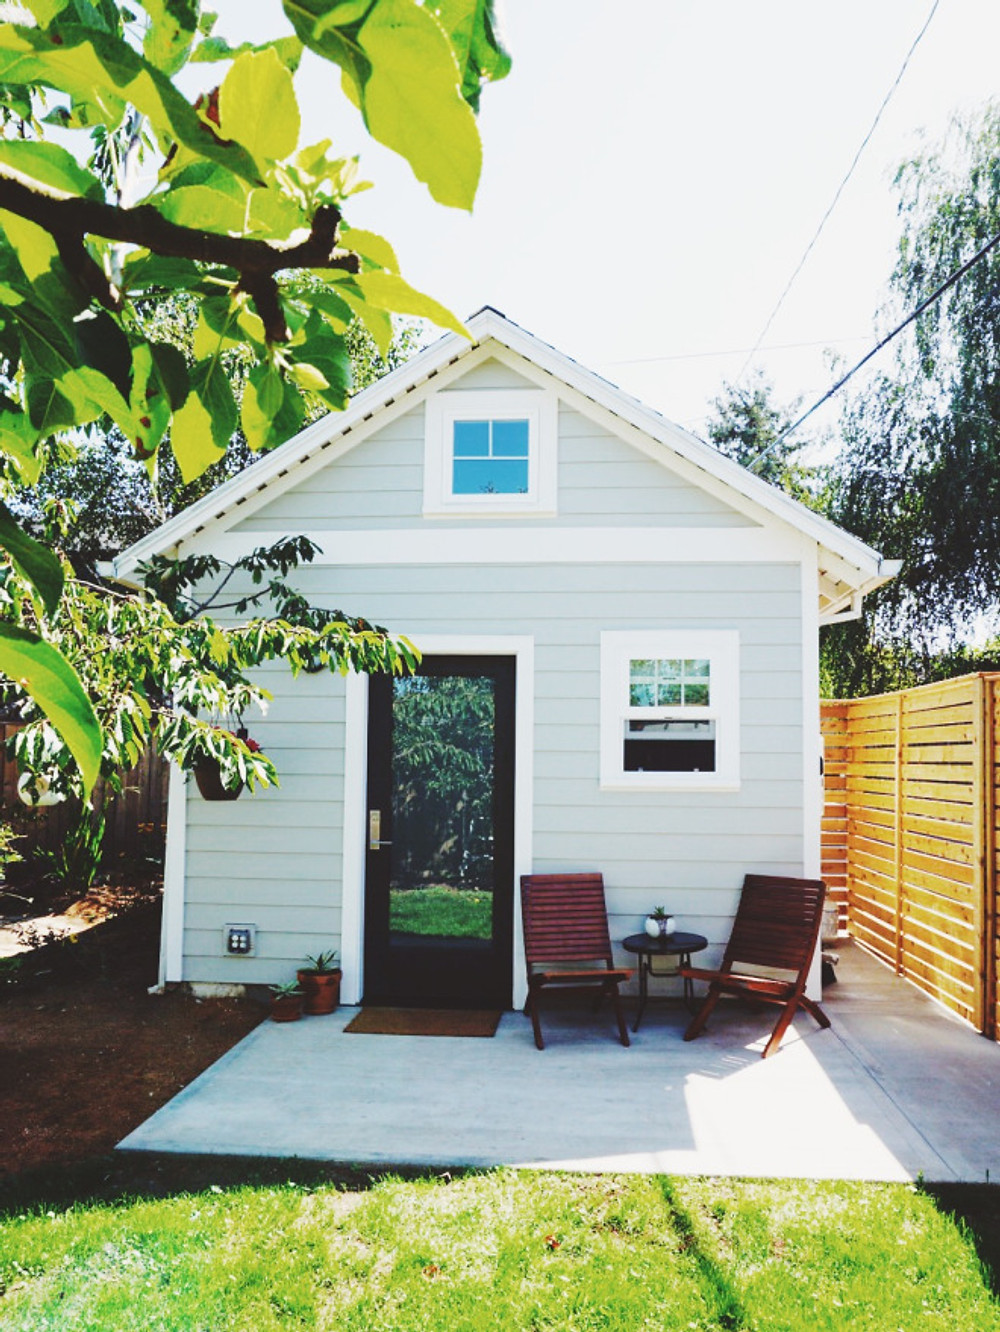 THe exterior of the tiny house